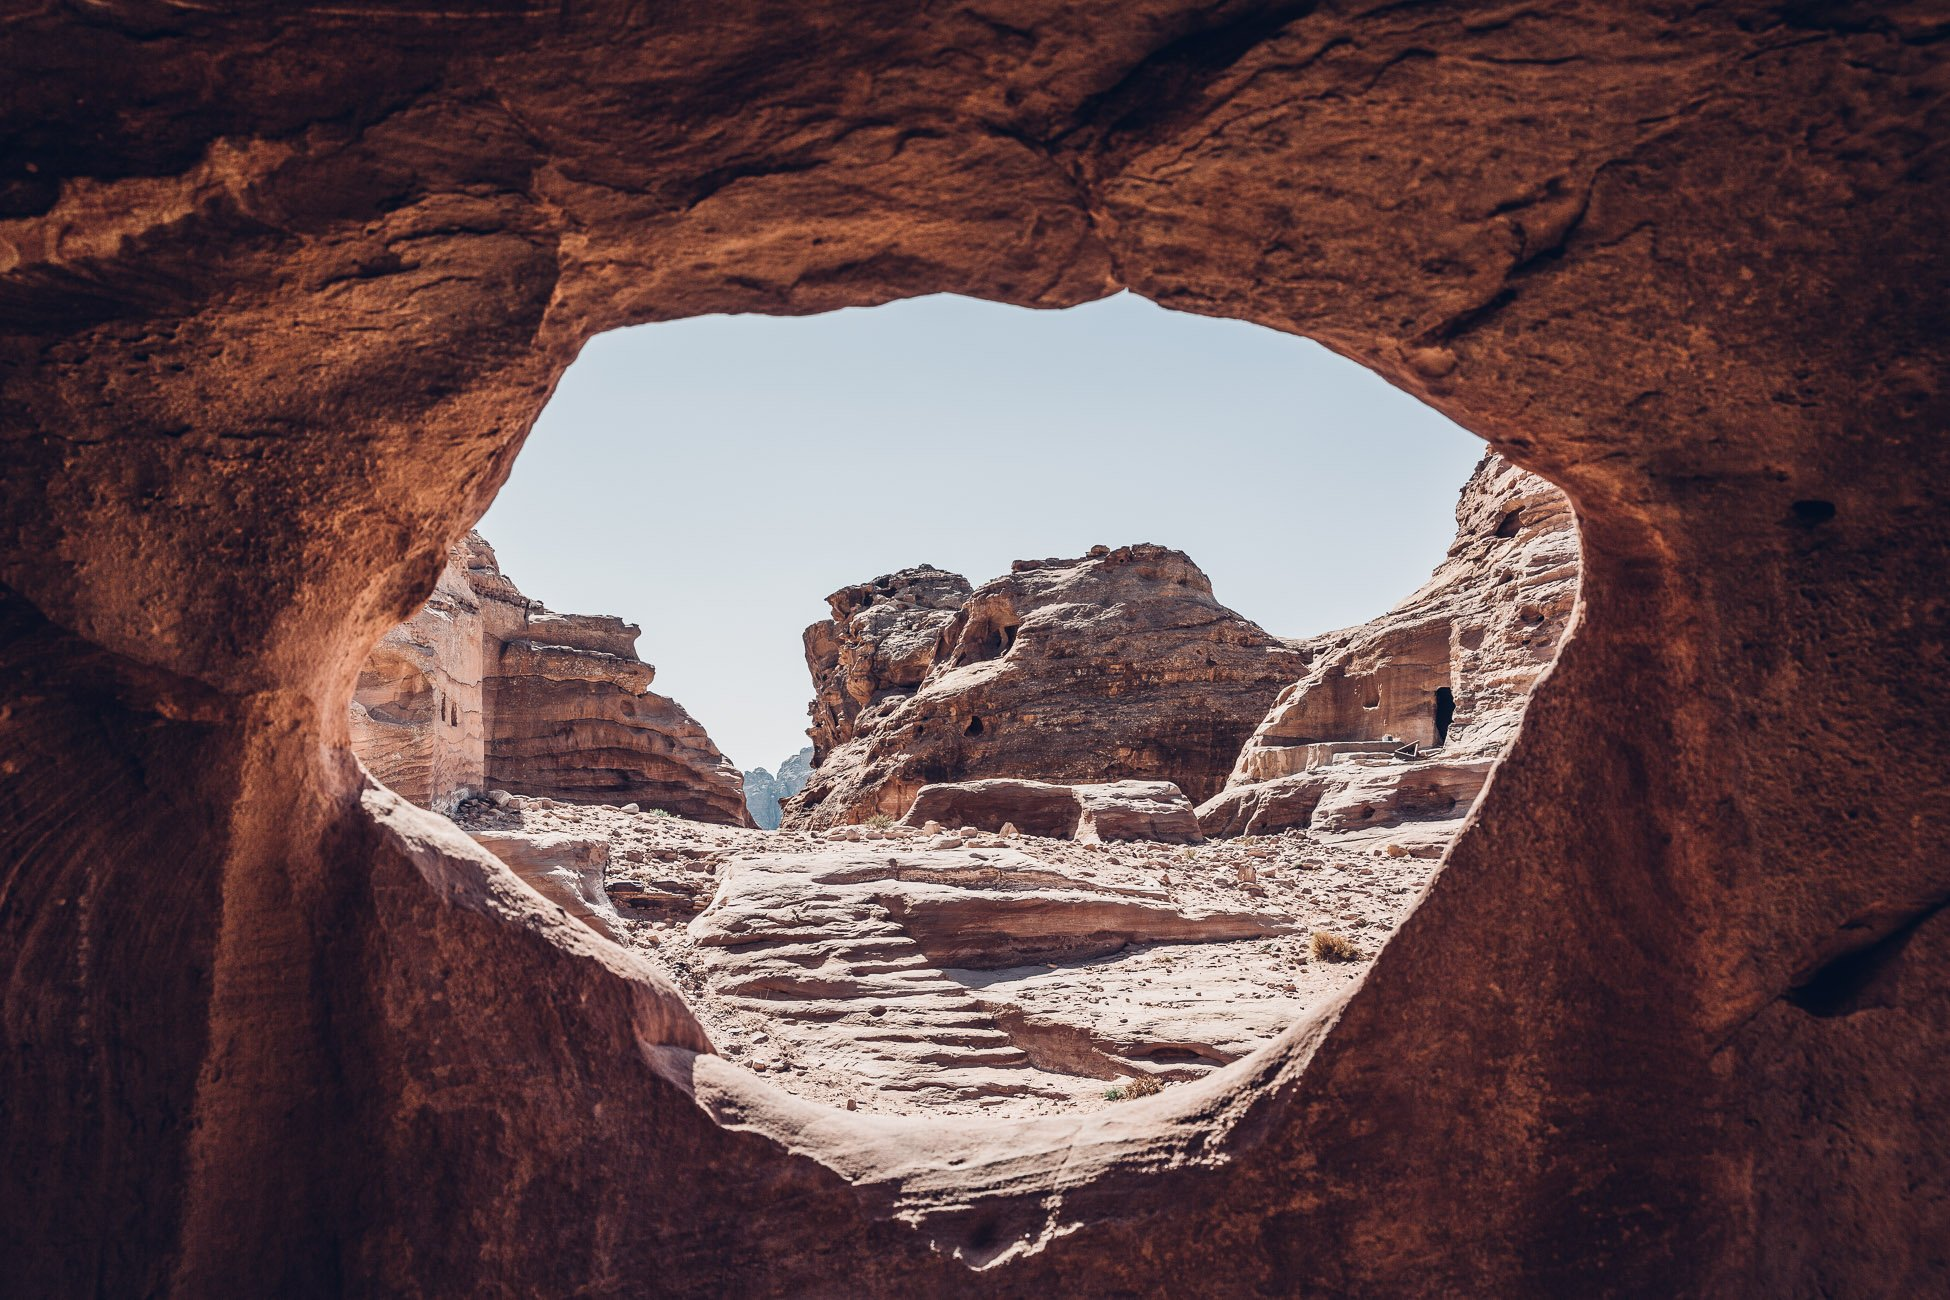 View of Petra through a hole in a cave